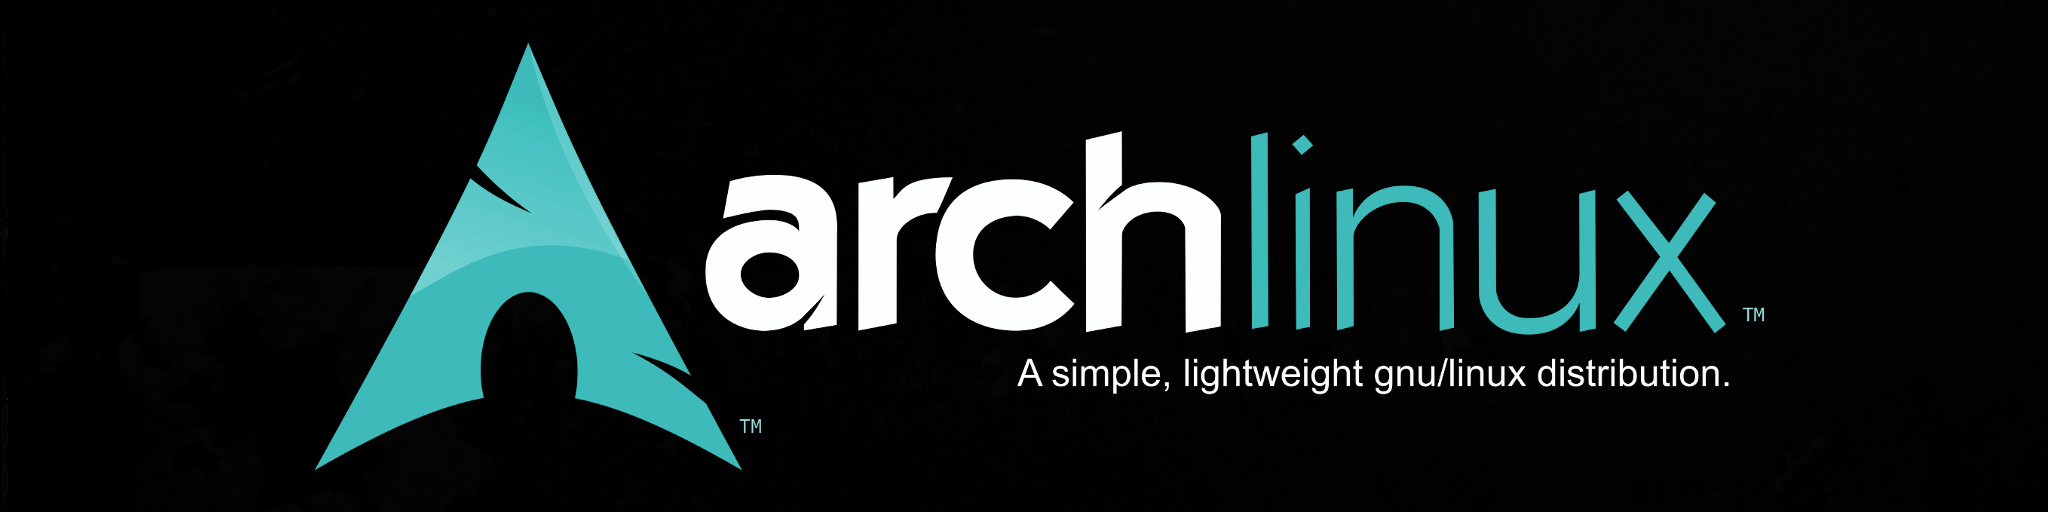 Arch Linux feature image